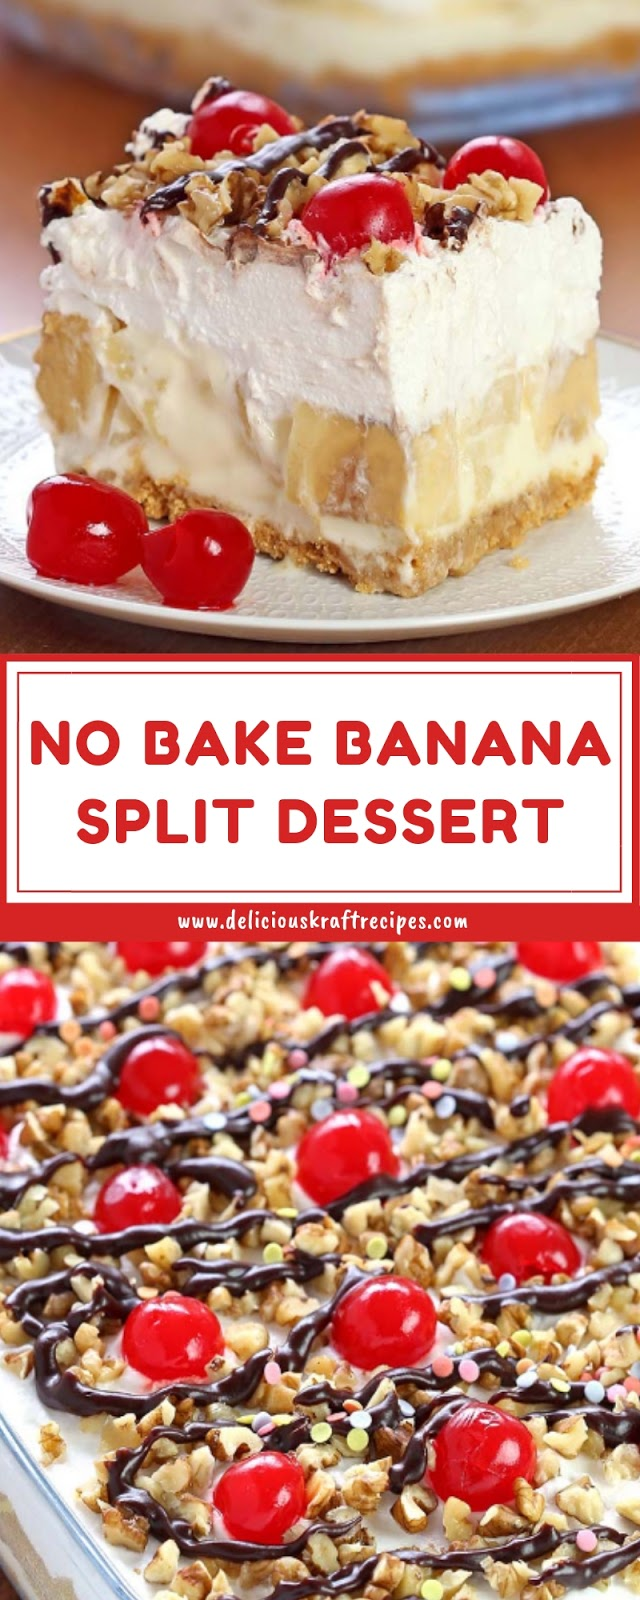 NO BAKE BANANA SPLIT DESSERT